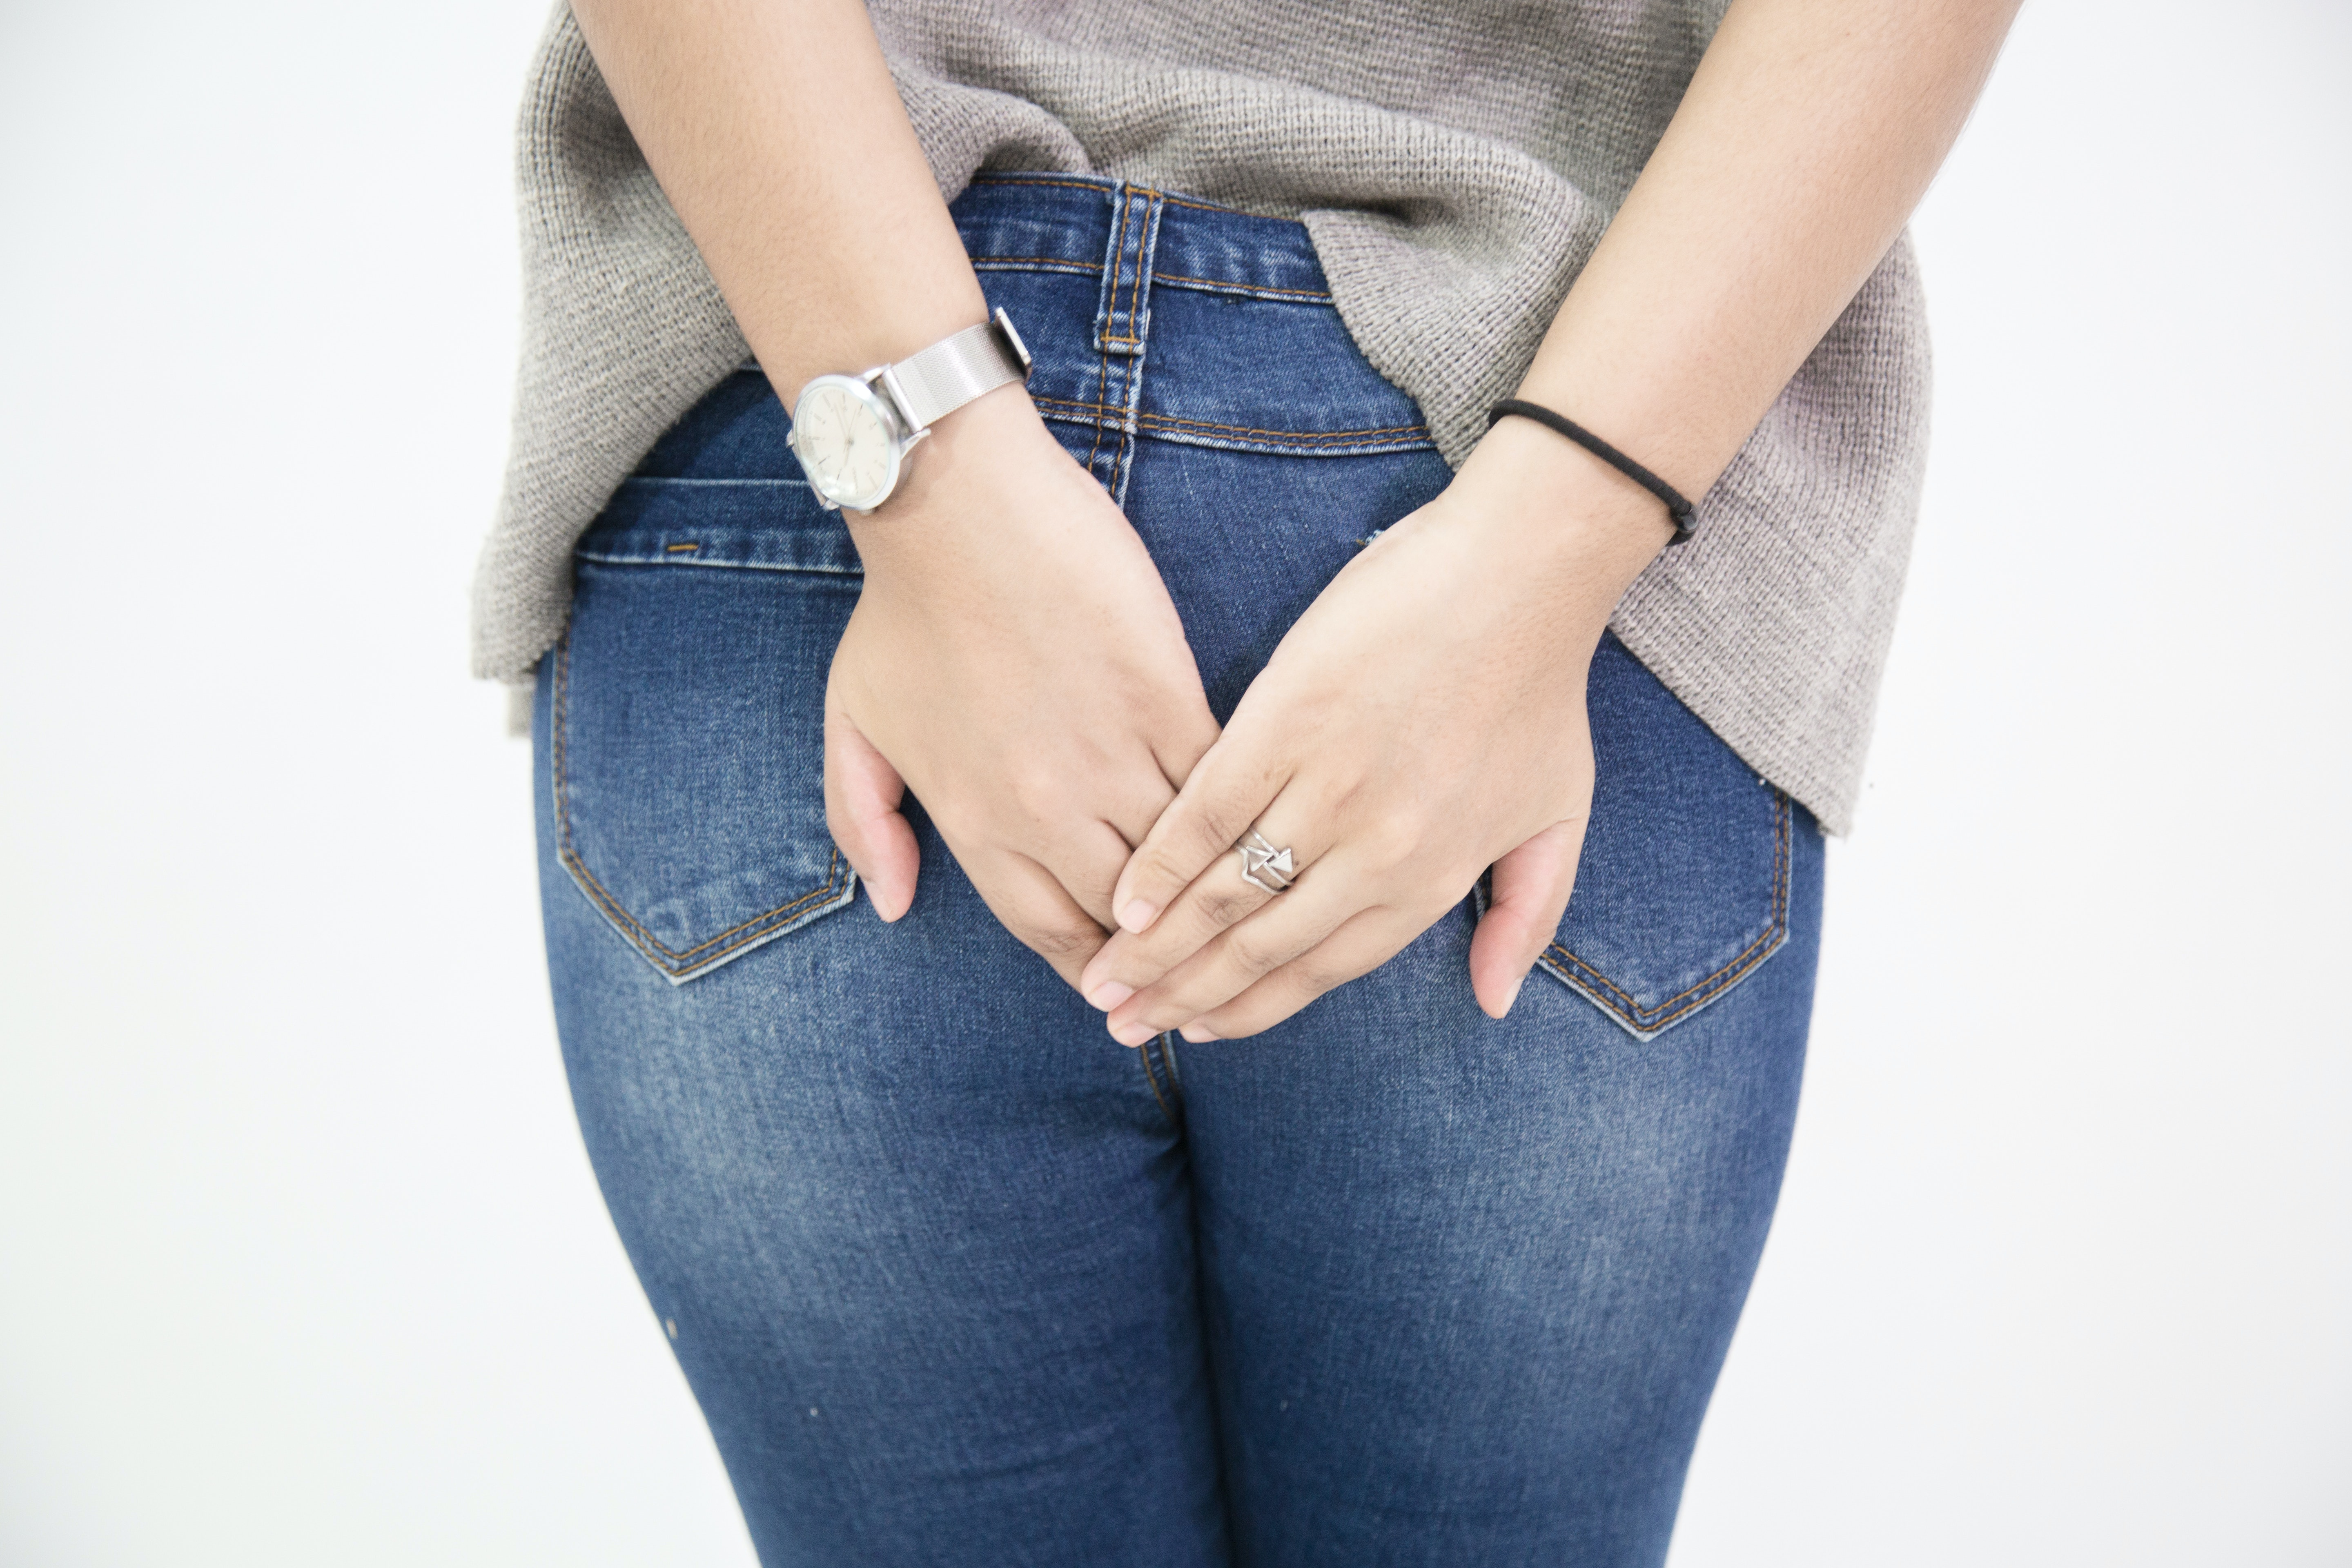 An image depicting a person suffering from rectal pain symptoms